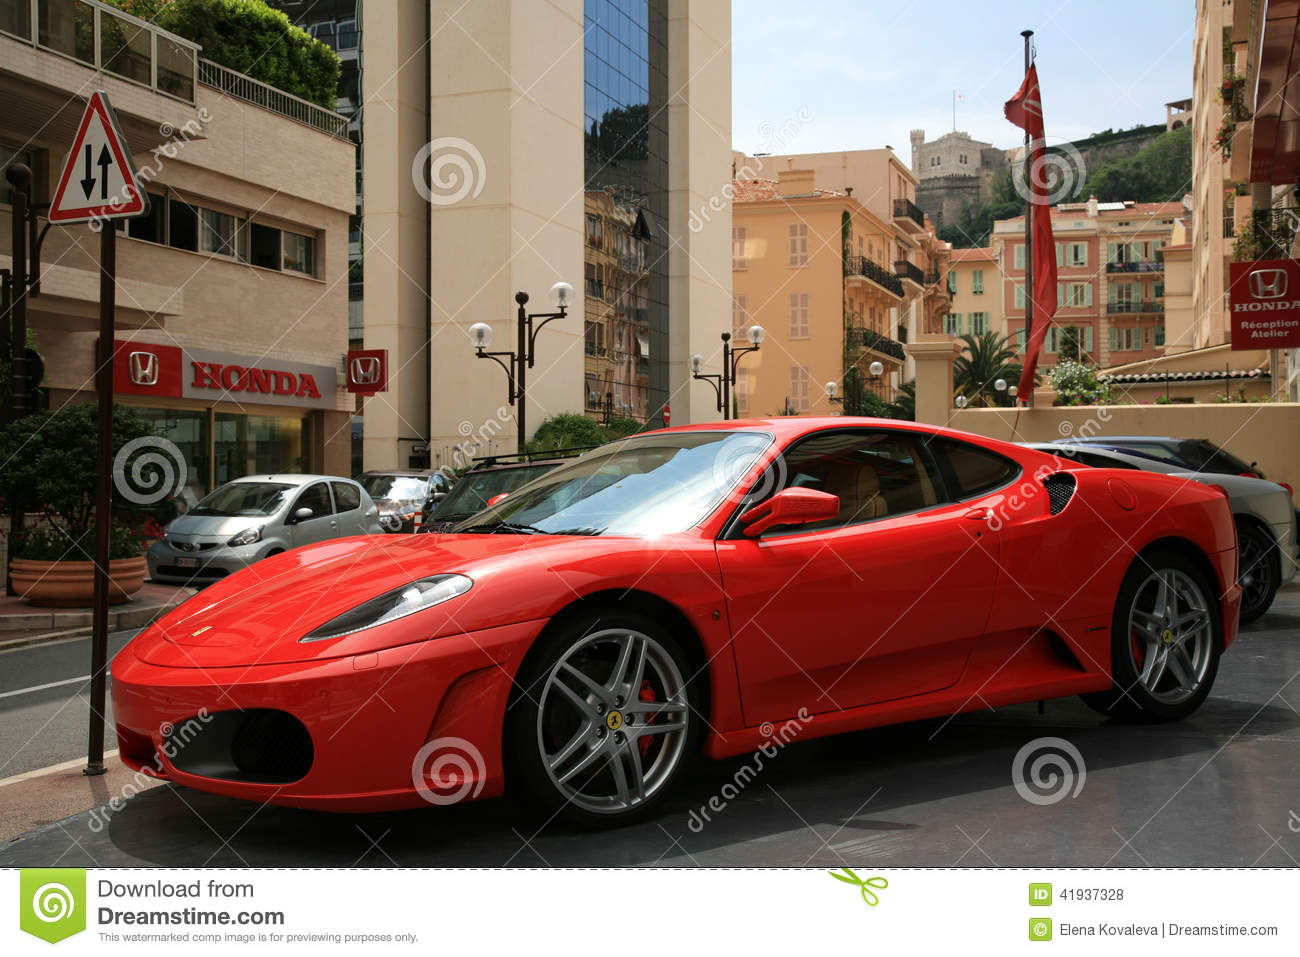 Luxury Car Ferrari Parked Near Store Selling Car Editorial Stock Photo Image Of City French 41937328